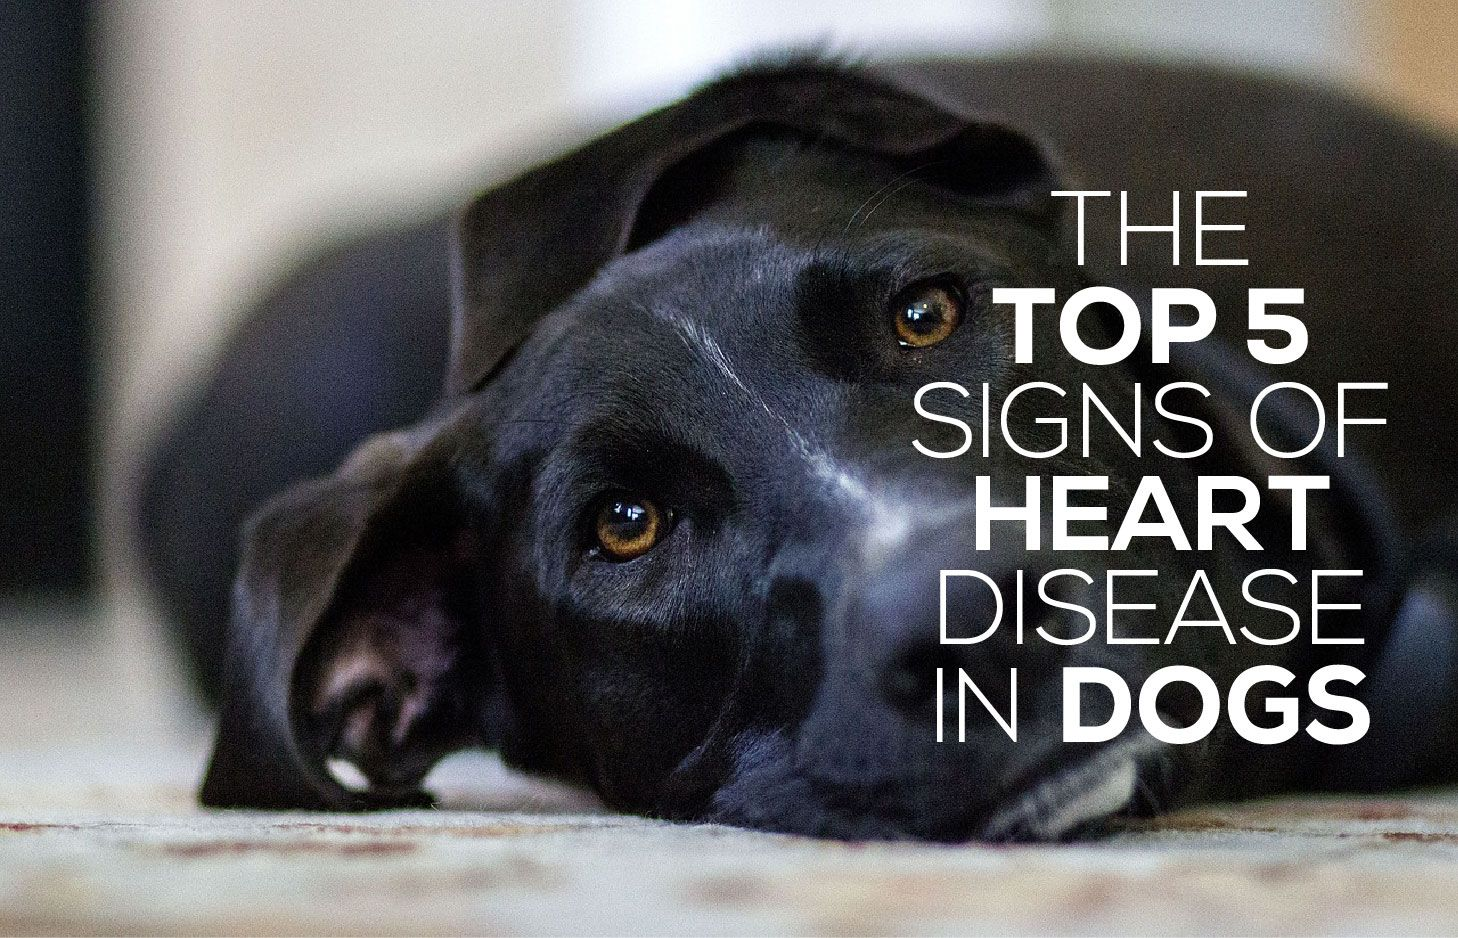 The Top 5 Signs of Heart Disease in Dogs Cat fleas, Dogs